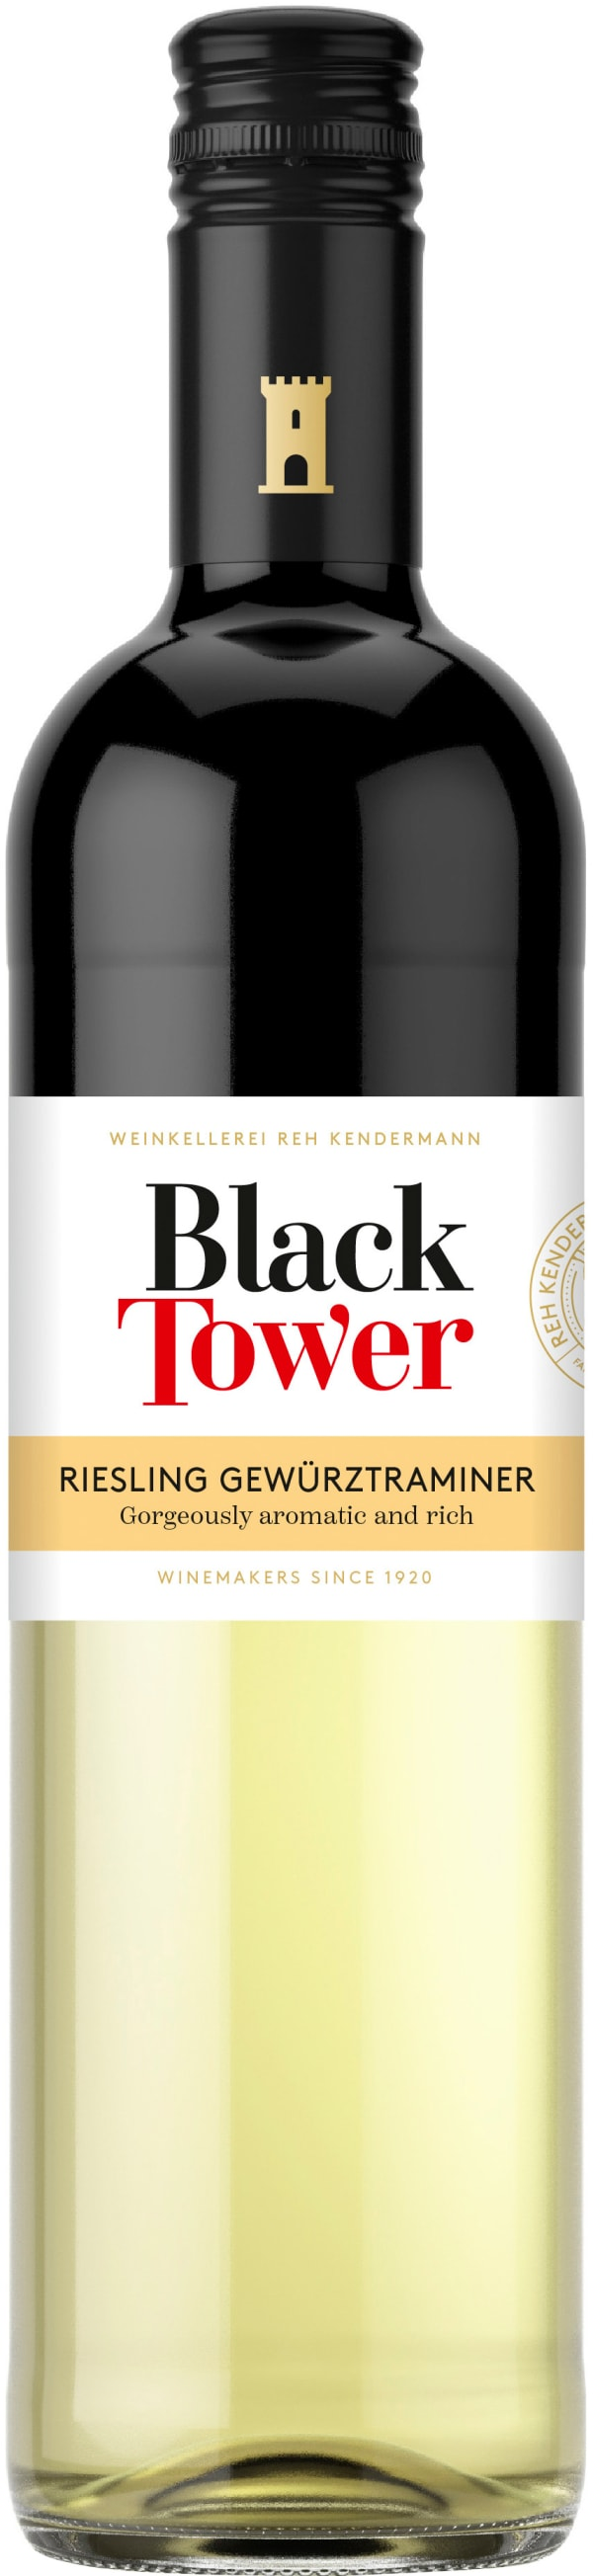 Black Tower Riesling Gewürztraminer 2019